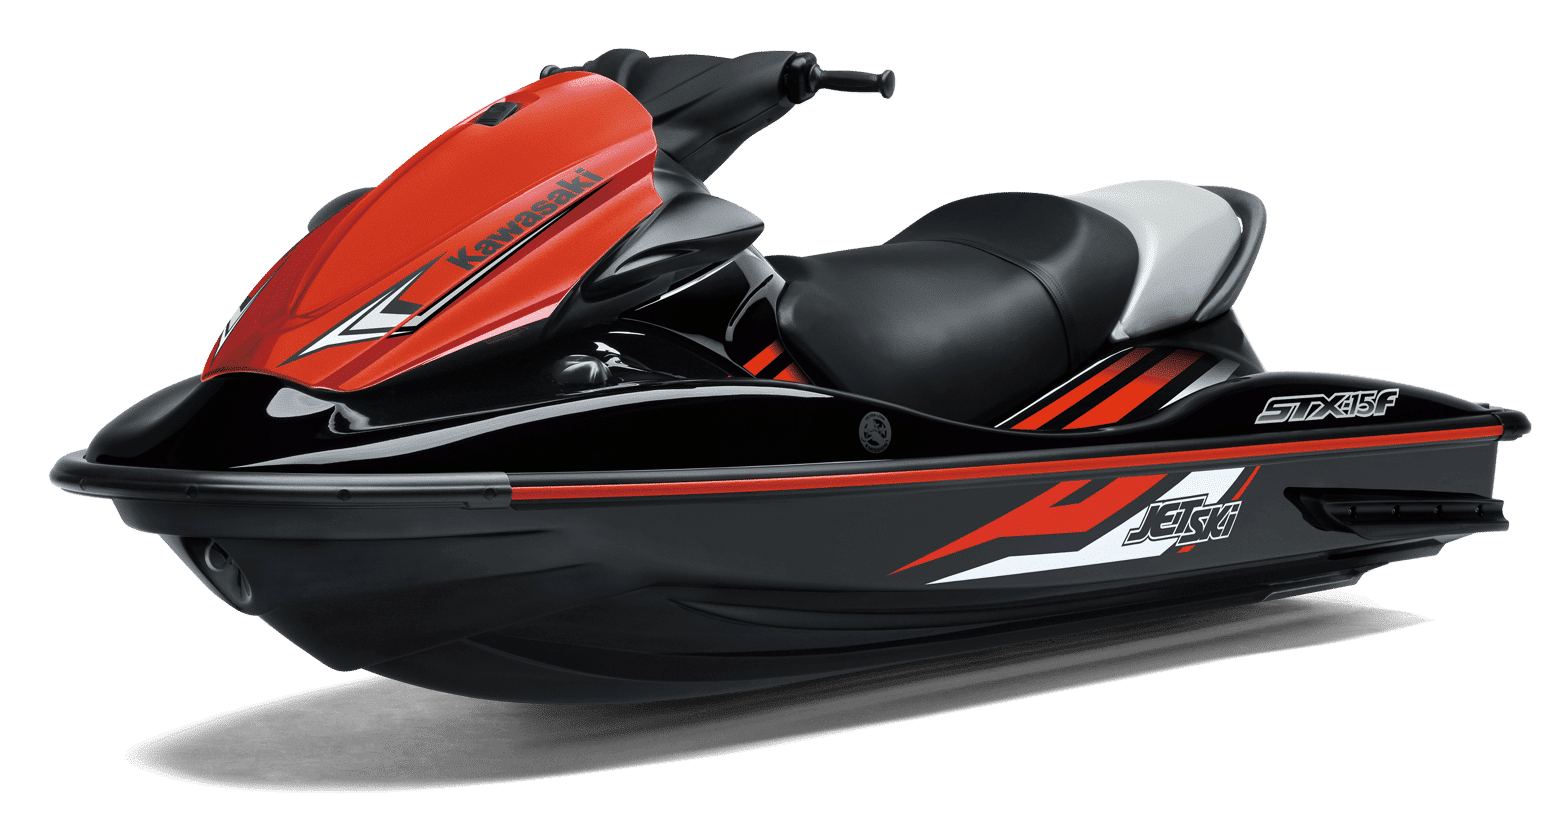 Why Yamaha is the Most Reliable Jet Ski - JetSkiTips com